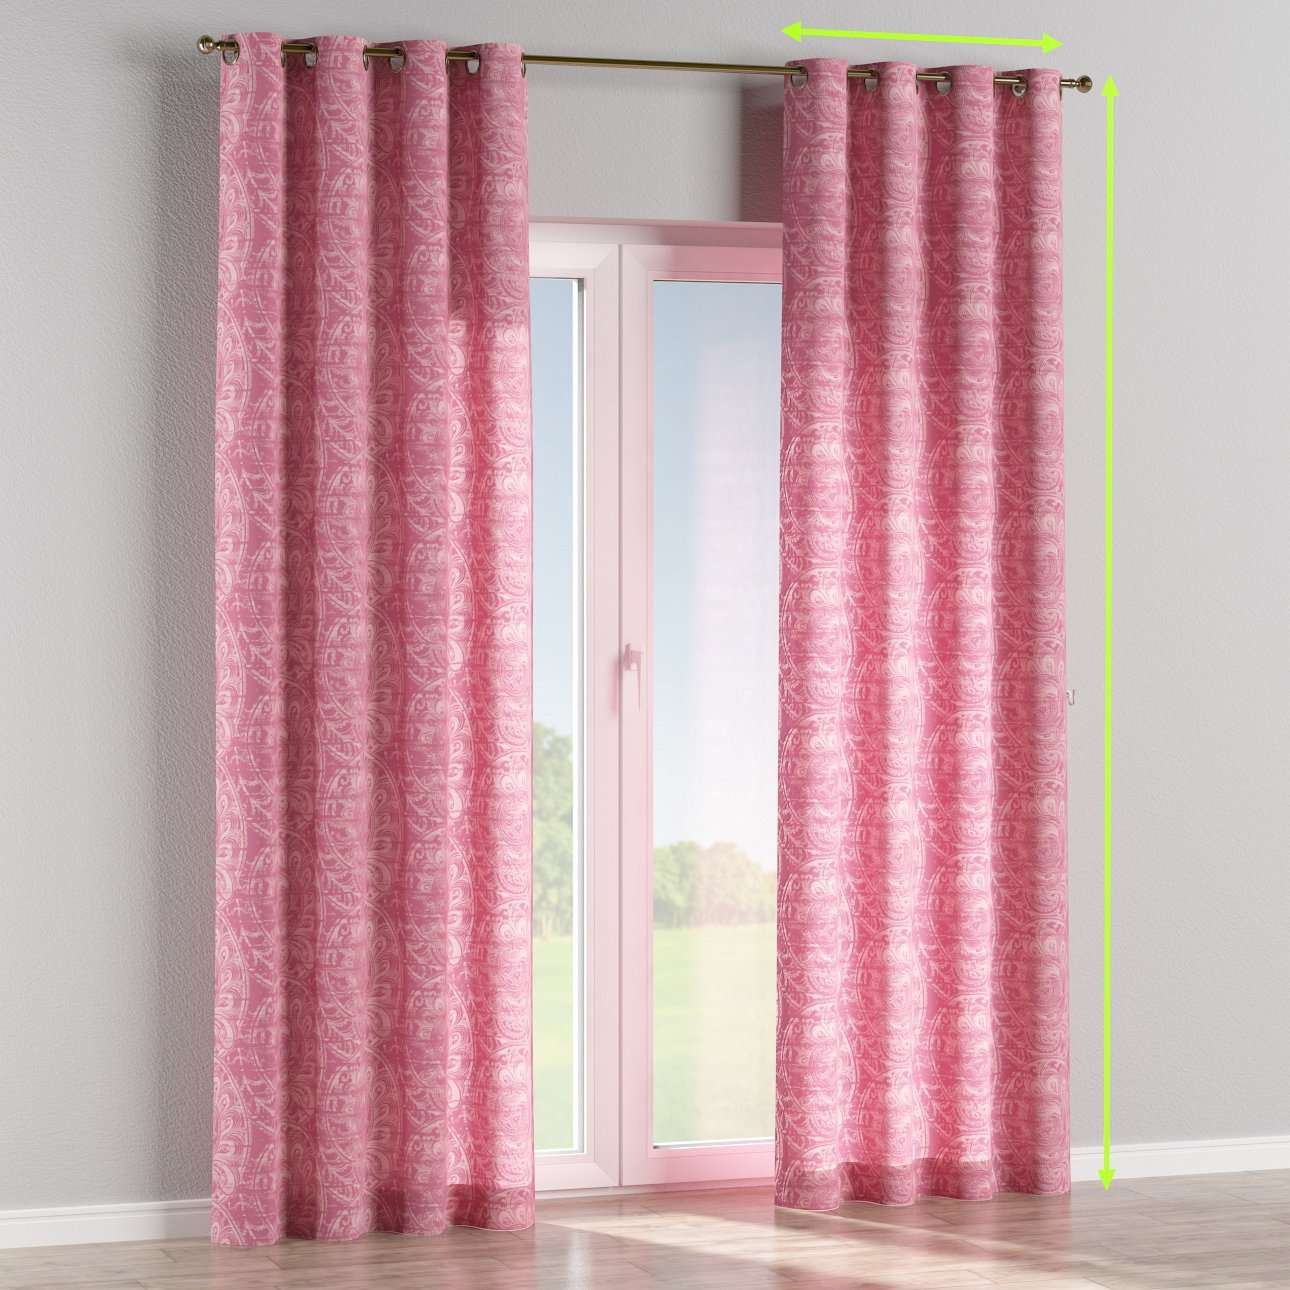 Eyelet curtains in collection Mirella, fabric: 143-07